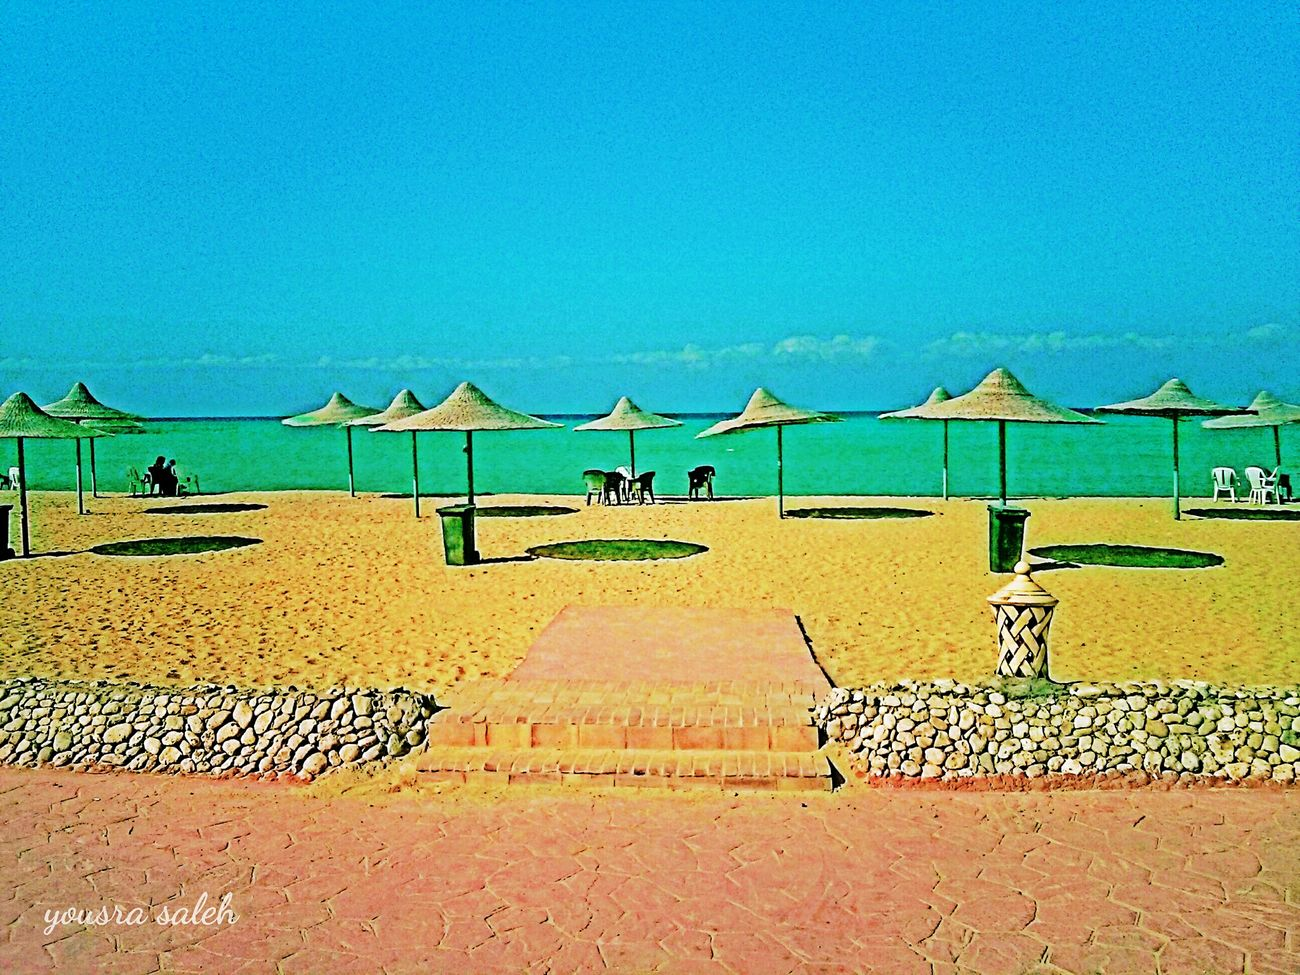 Colour Of Life Here Belongs To Me Beach Beach Photography Sea Seascape Sea And Sky Golden Sand Sand Nature Nature_collection Tranquility Naturelovers Beach Umbrellas Umbrellas Relaxing Relaxing View Last Summer Colorful Taking Photos Seaside Sea View Ras Sudr Egypt Smartphonephotography Love To Take Photos ❤ 10Oct_2015